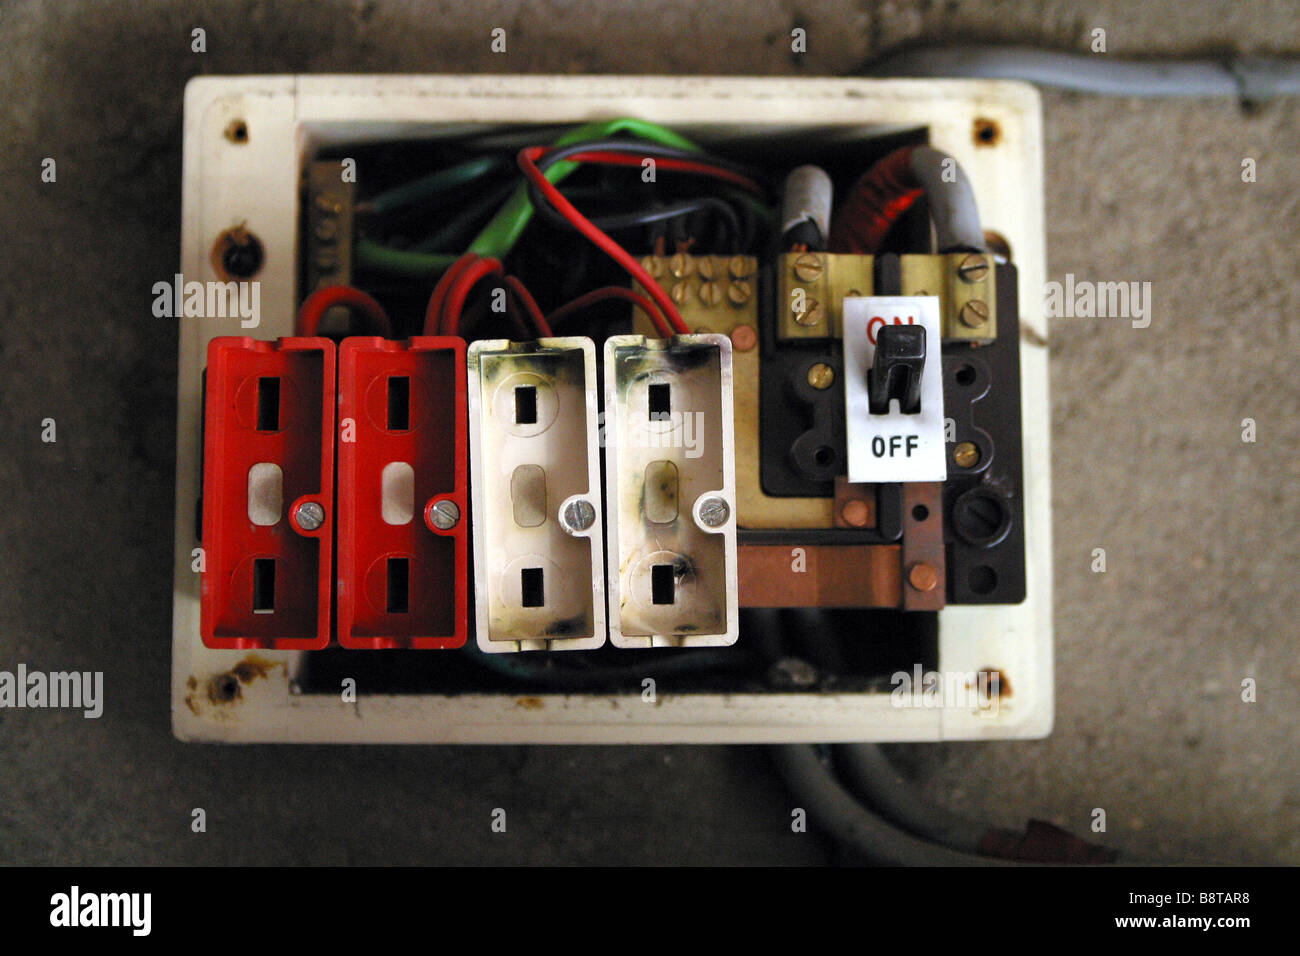 hight resolution of old home fuse box diagram everything wiring diagram old electrical fuse box wiring diagram old home